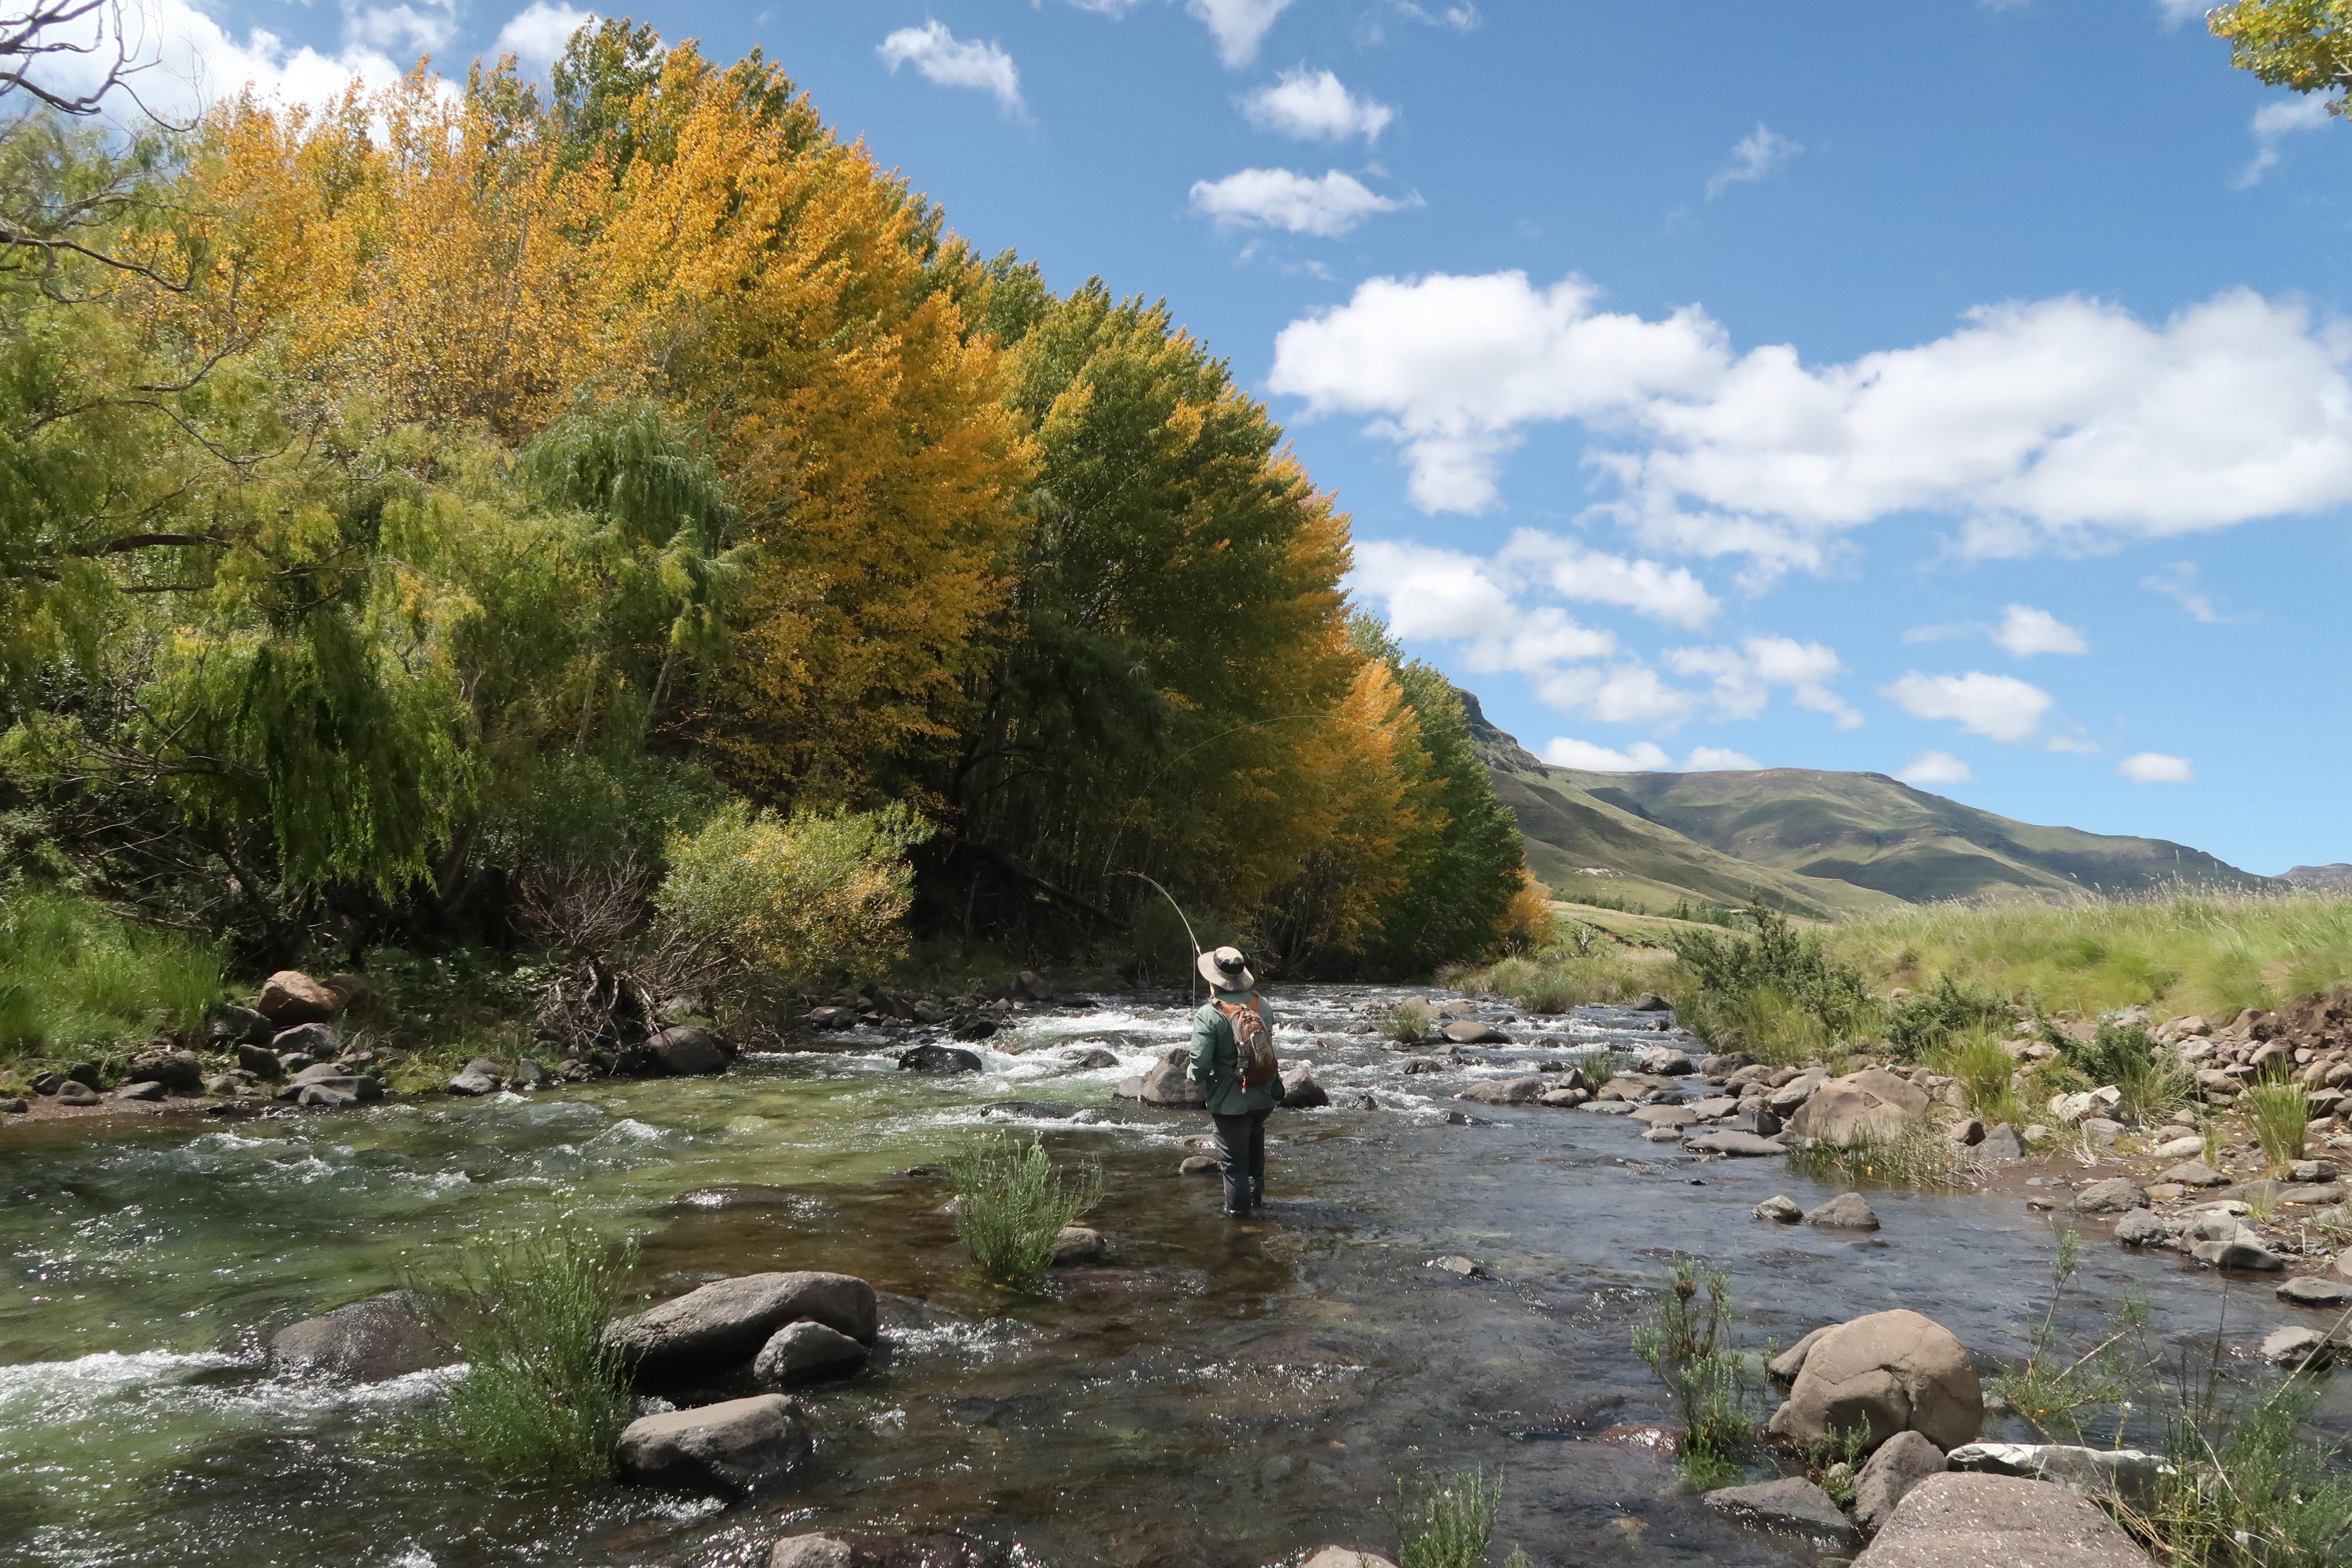 Page 34 of The Dirt Road Wild Trout Association Title Fly Fishing Festival 2021 written by First Second Name Photos: other name Dave Walker